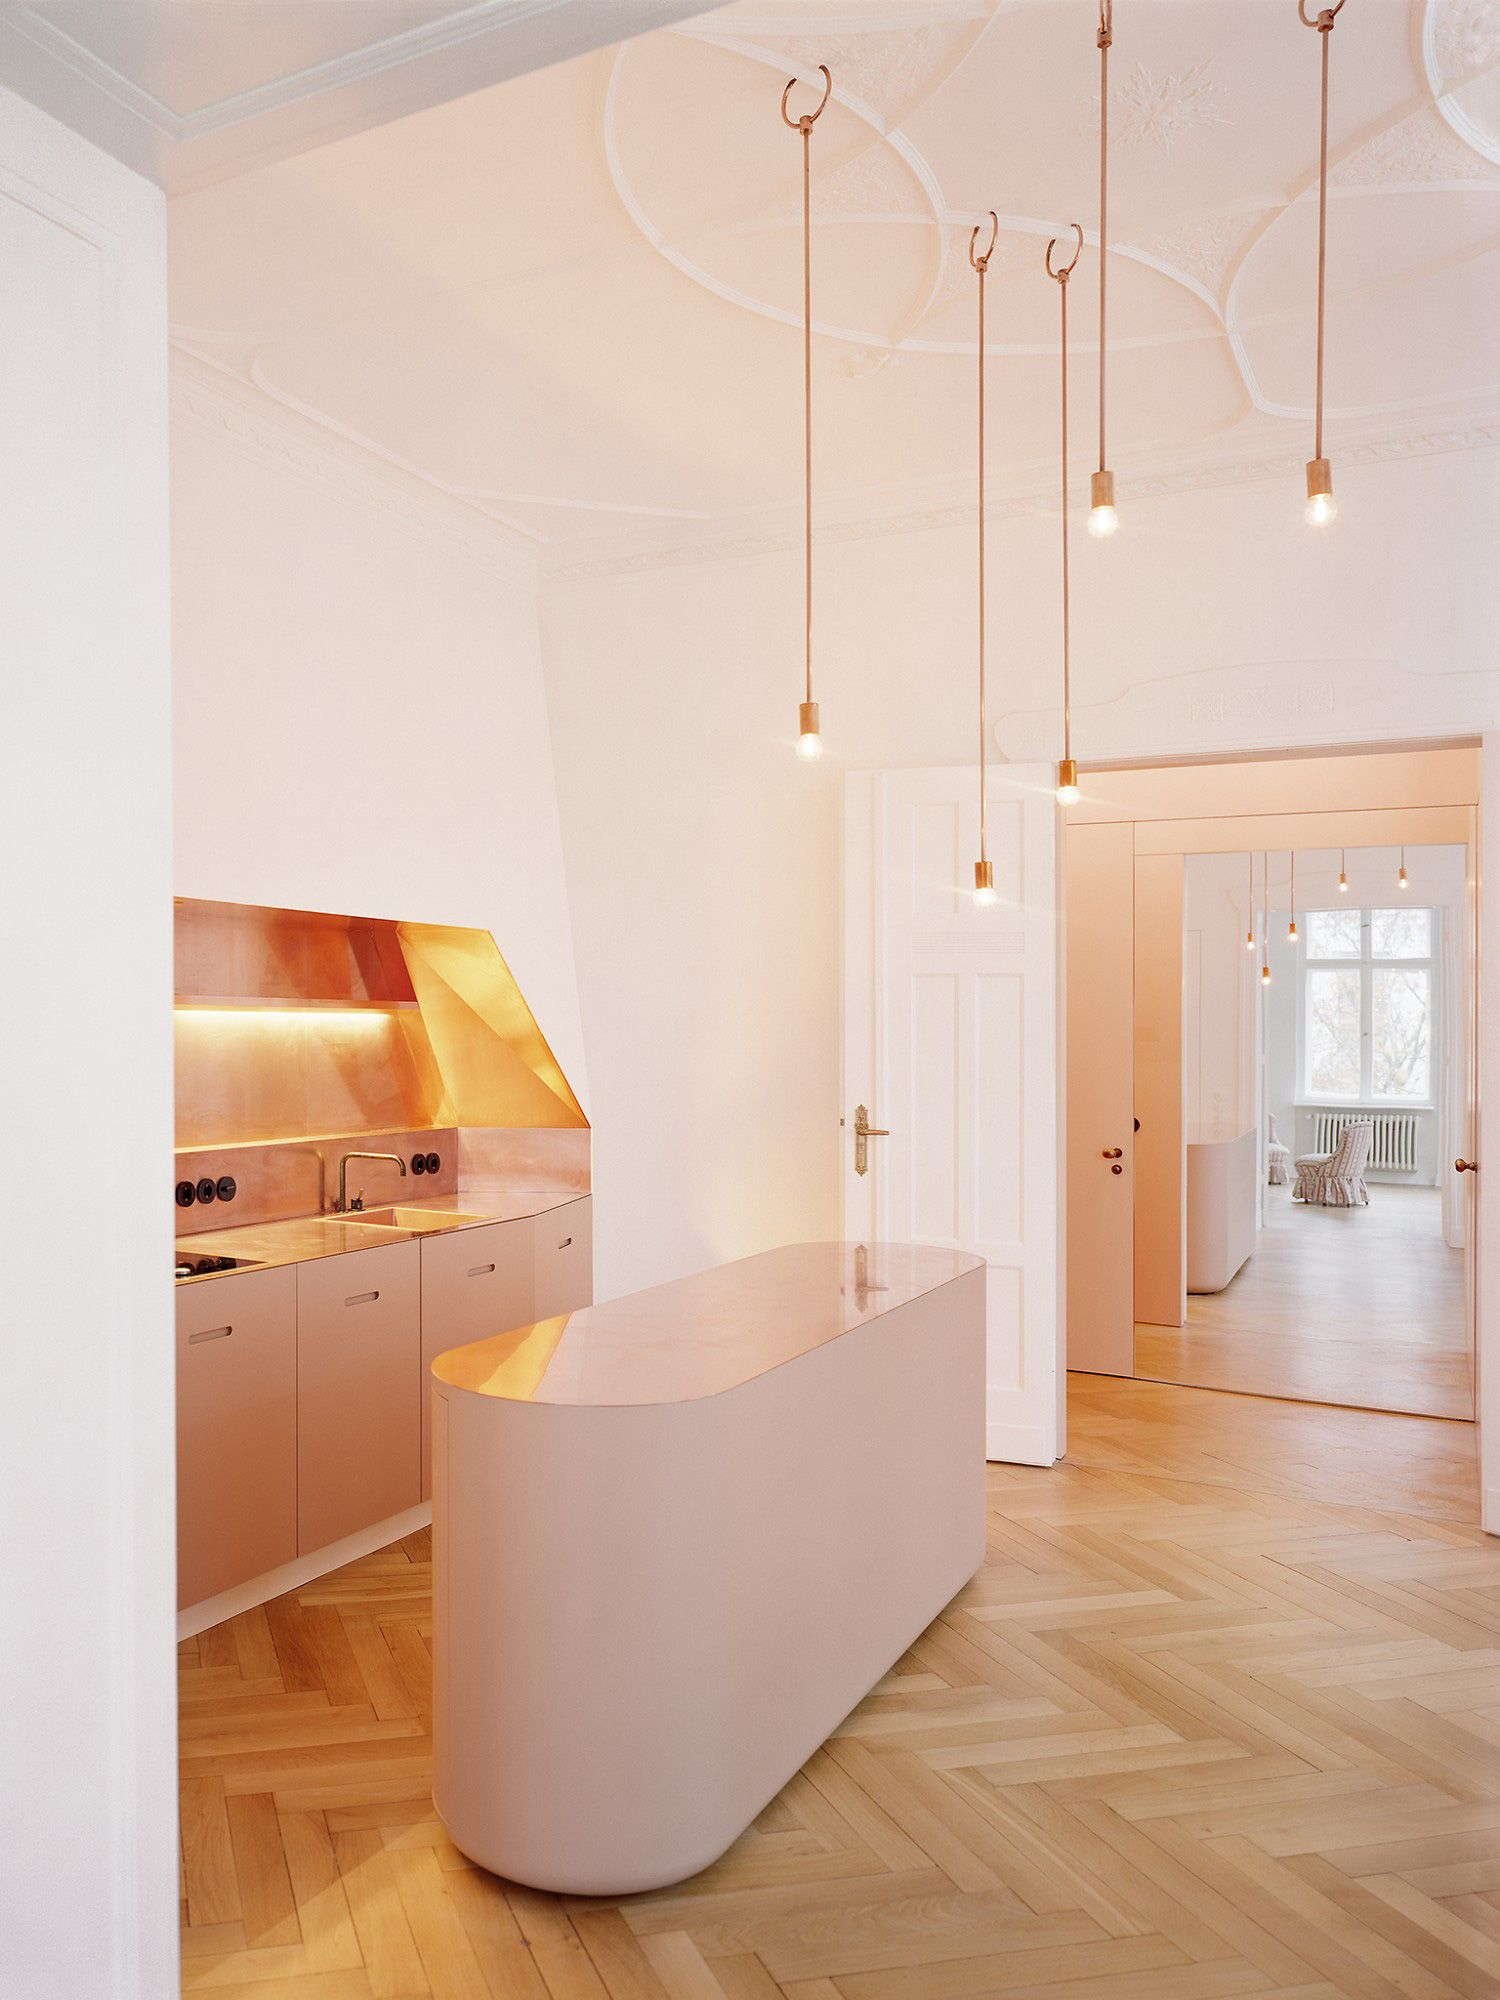 Apartment s in berlin by thomas kroger architects http www yellowtrace